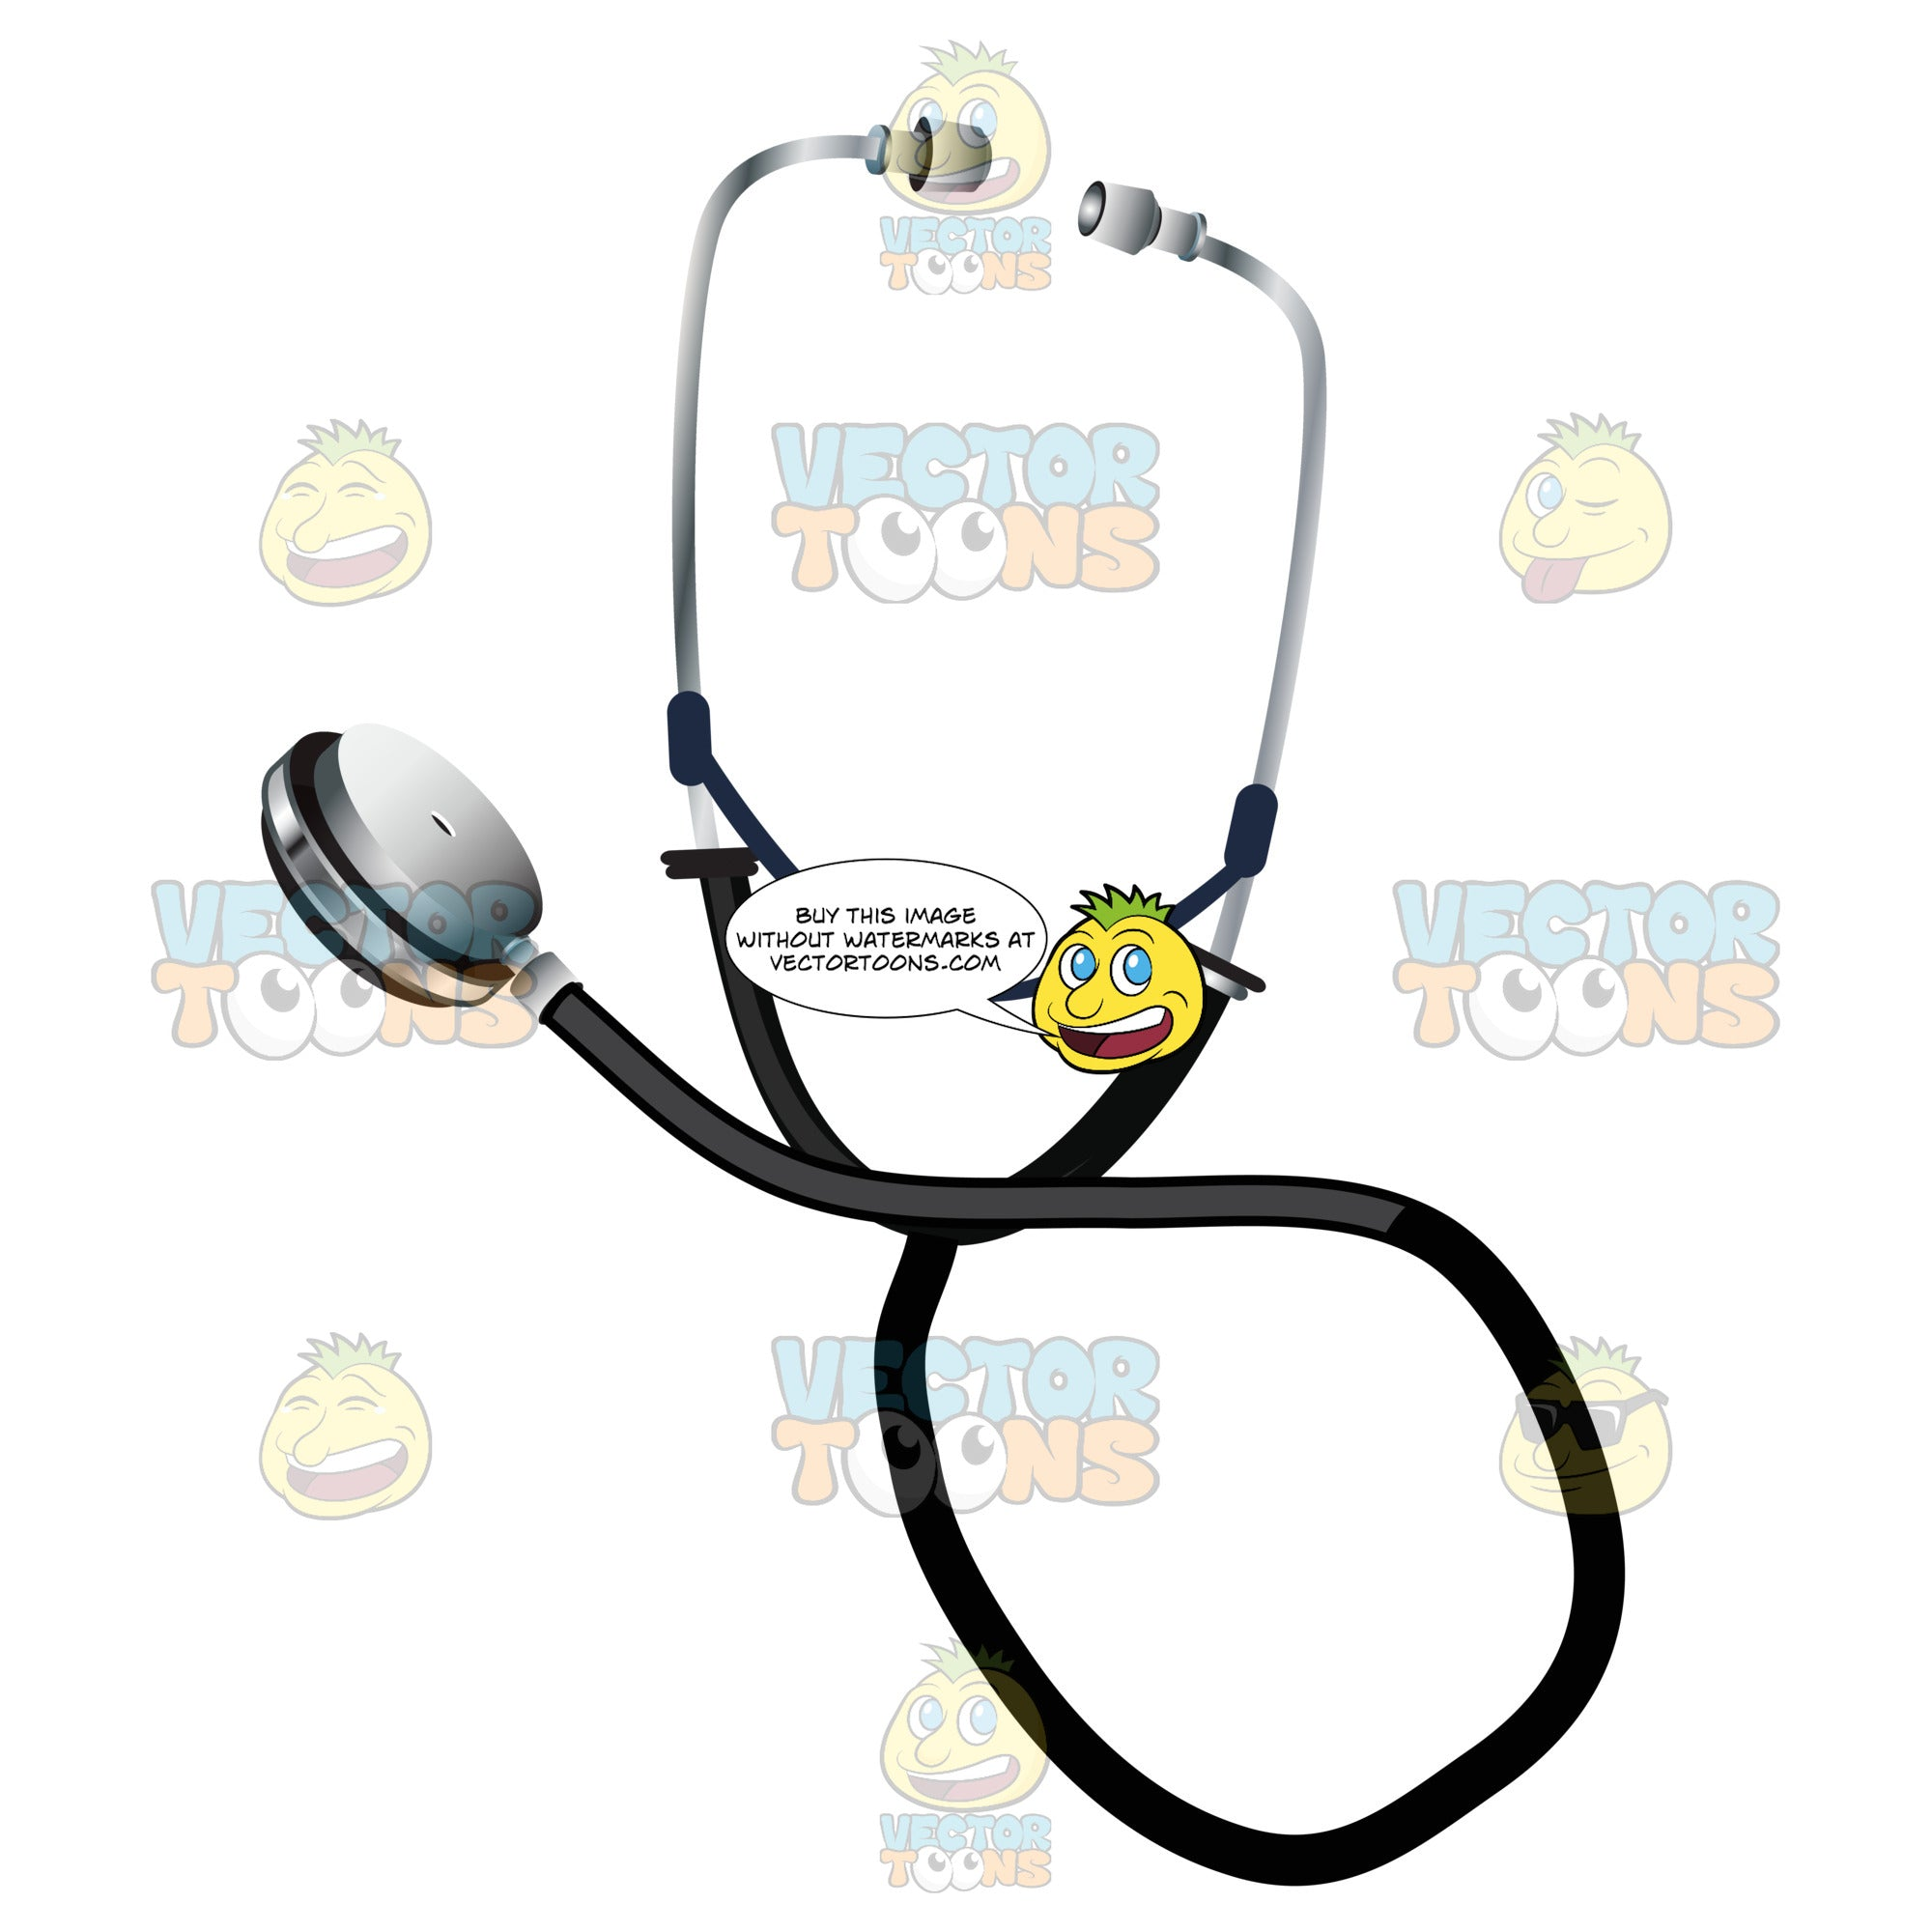 Silver And Black Stethoscope